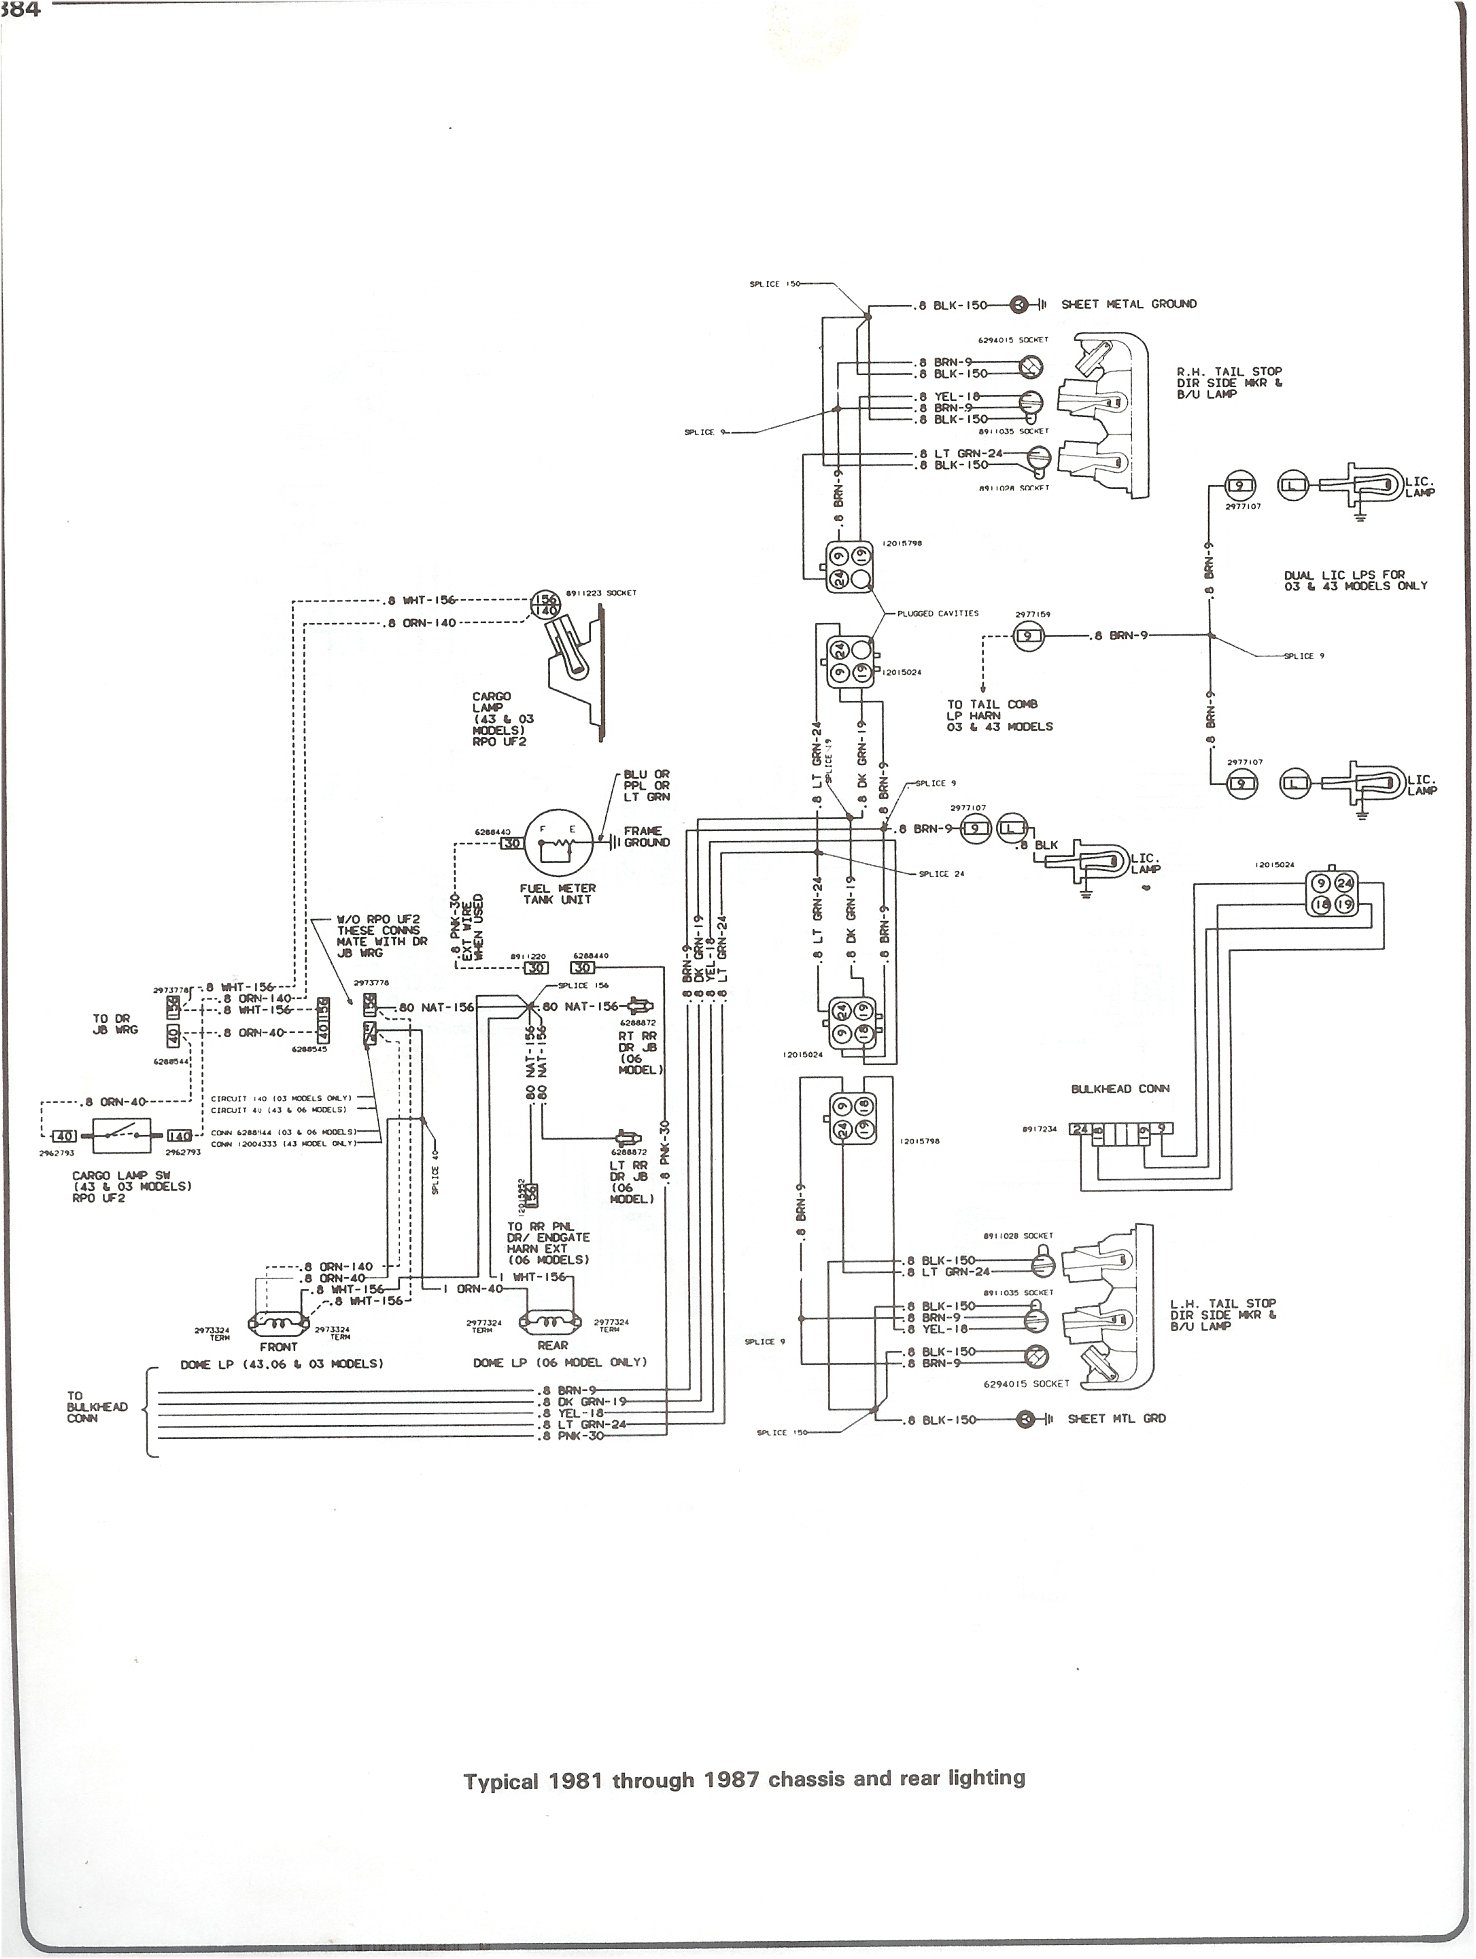 1990 Civic Dash Fuse Panel Diagram Wiring Will Be A Thing 2000 Honda Chevy Silverado Drawing At Getdrawings Com Free For 1998 Ford 2001 Explorer